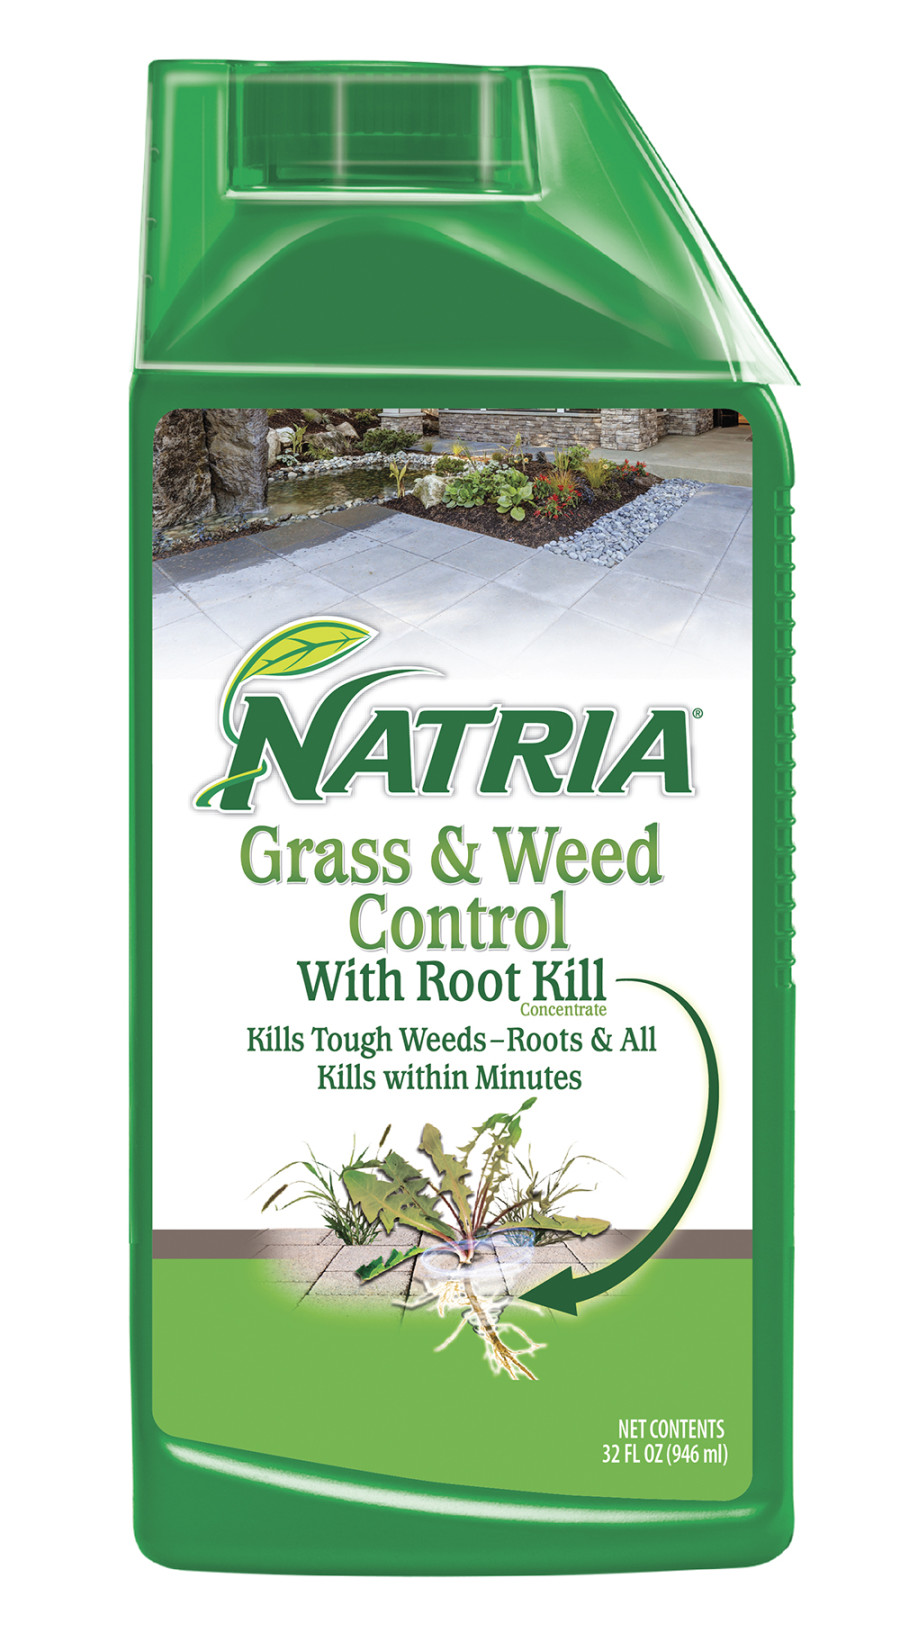 BioAdvanced Natria Grass & Weed Control w/Root Kill Concentrate Green Bottle 4ea/32 oz